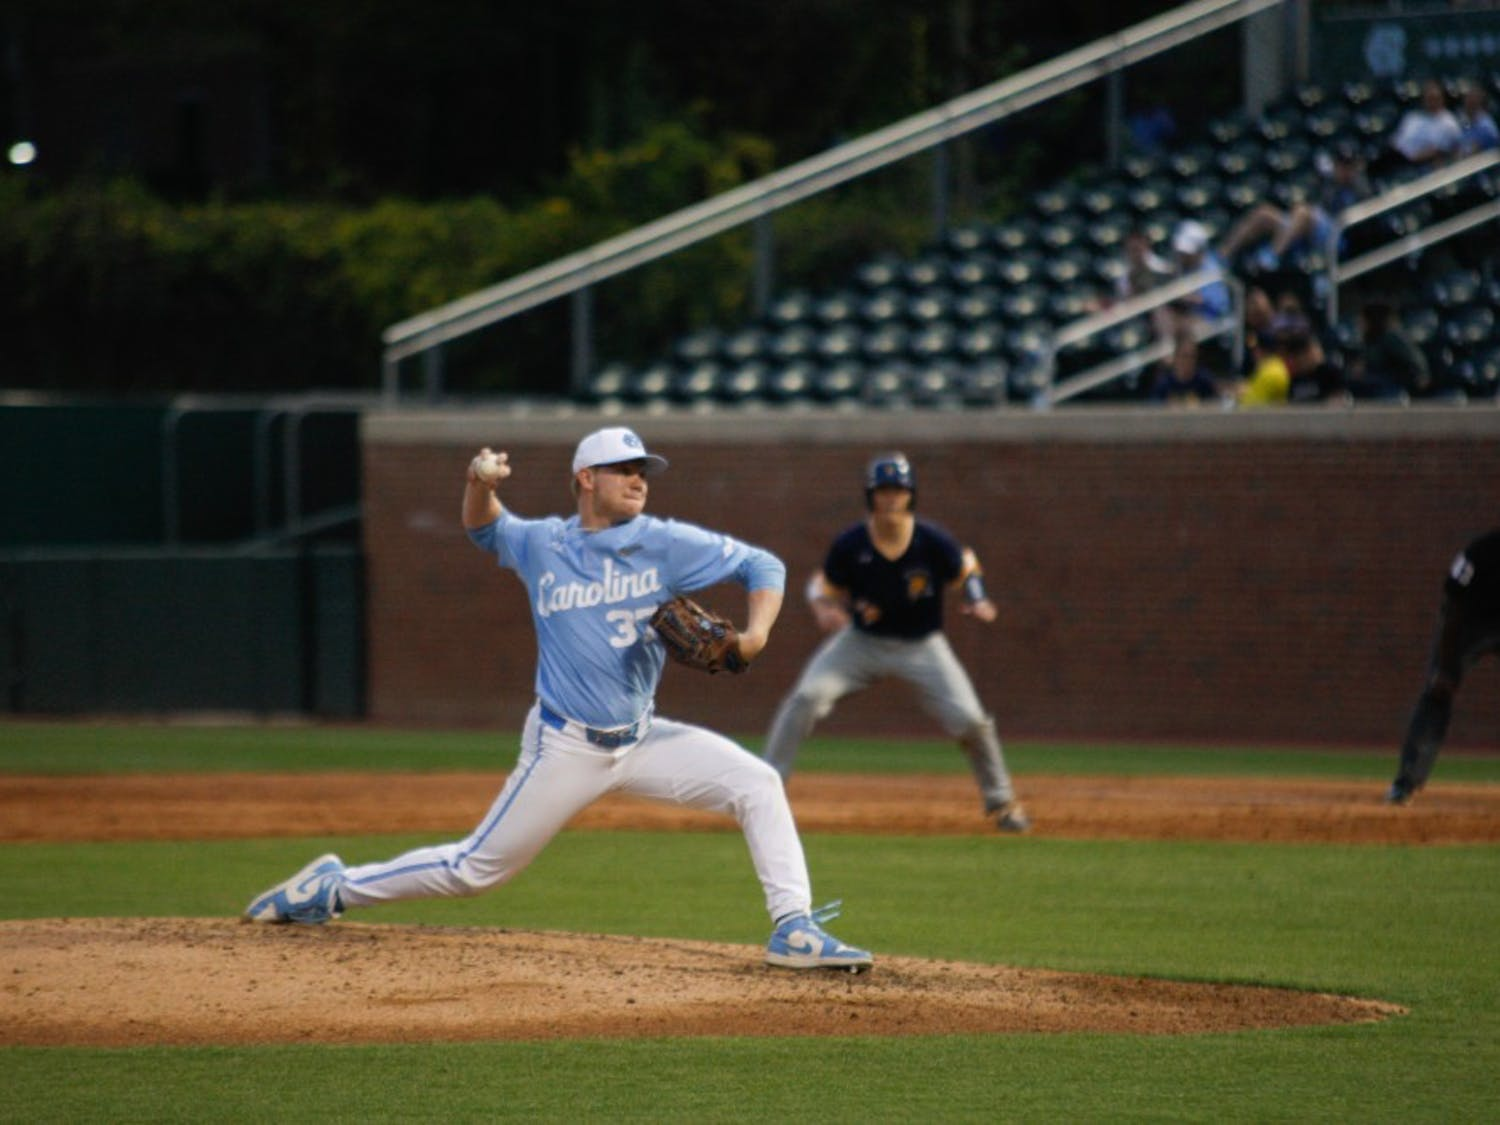 UNC junior pitcher Andrew Grogan (37) pitched against UNCG for four innings in Boshamer Stadium on Wednesday, April 9, 2019. The Tar Heels beat the Spartans 17-4.